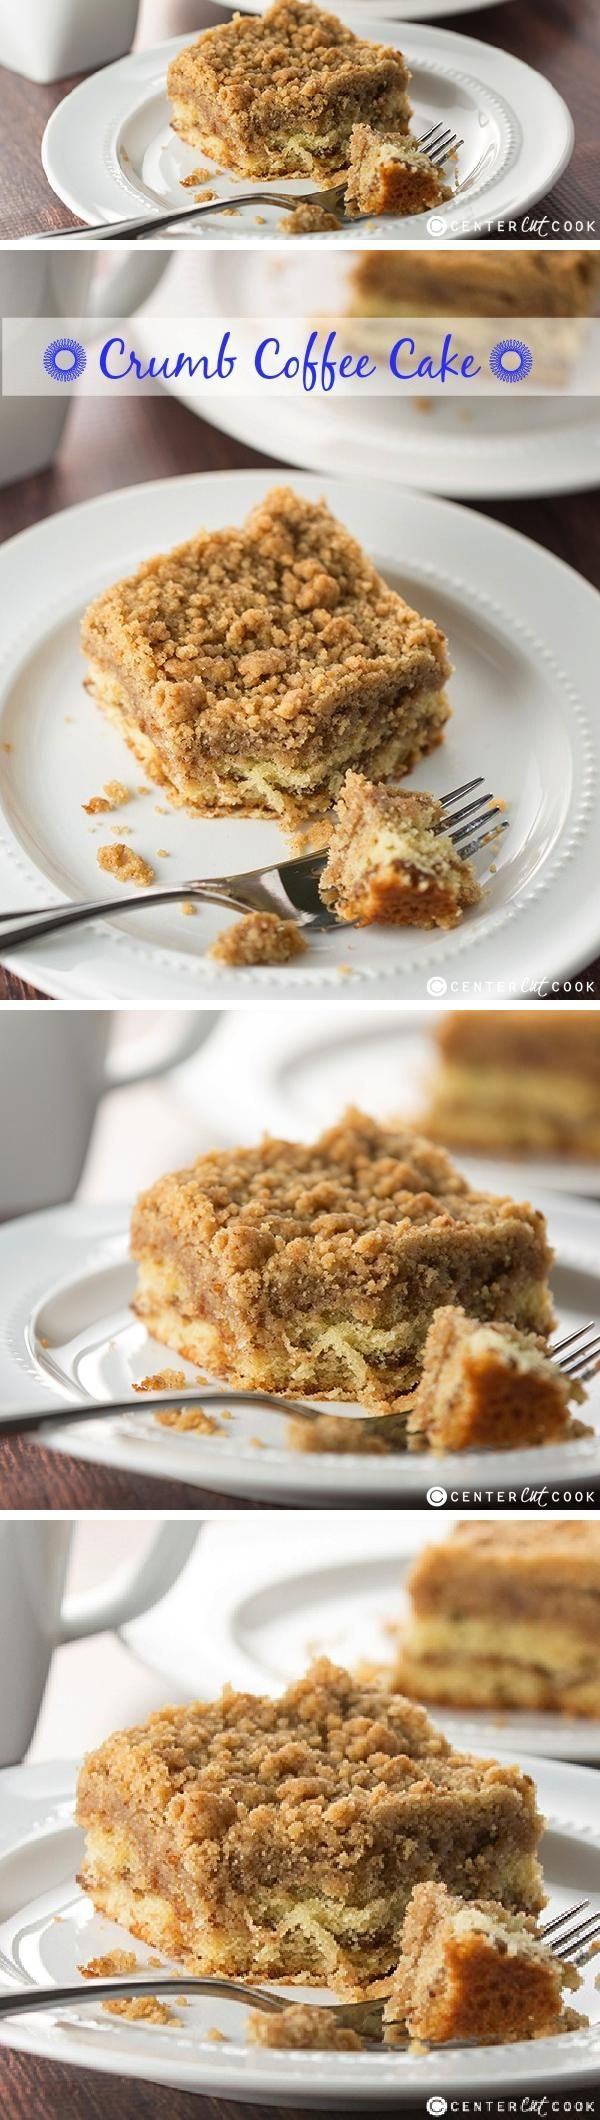 This ultra CRUMBLY Crumb COFFEE CAKE recipe is buttery with cinnamon and loaded with crumbles! It's everything that a crumb coffee cake should be!